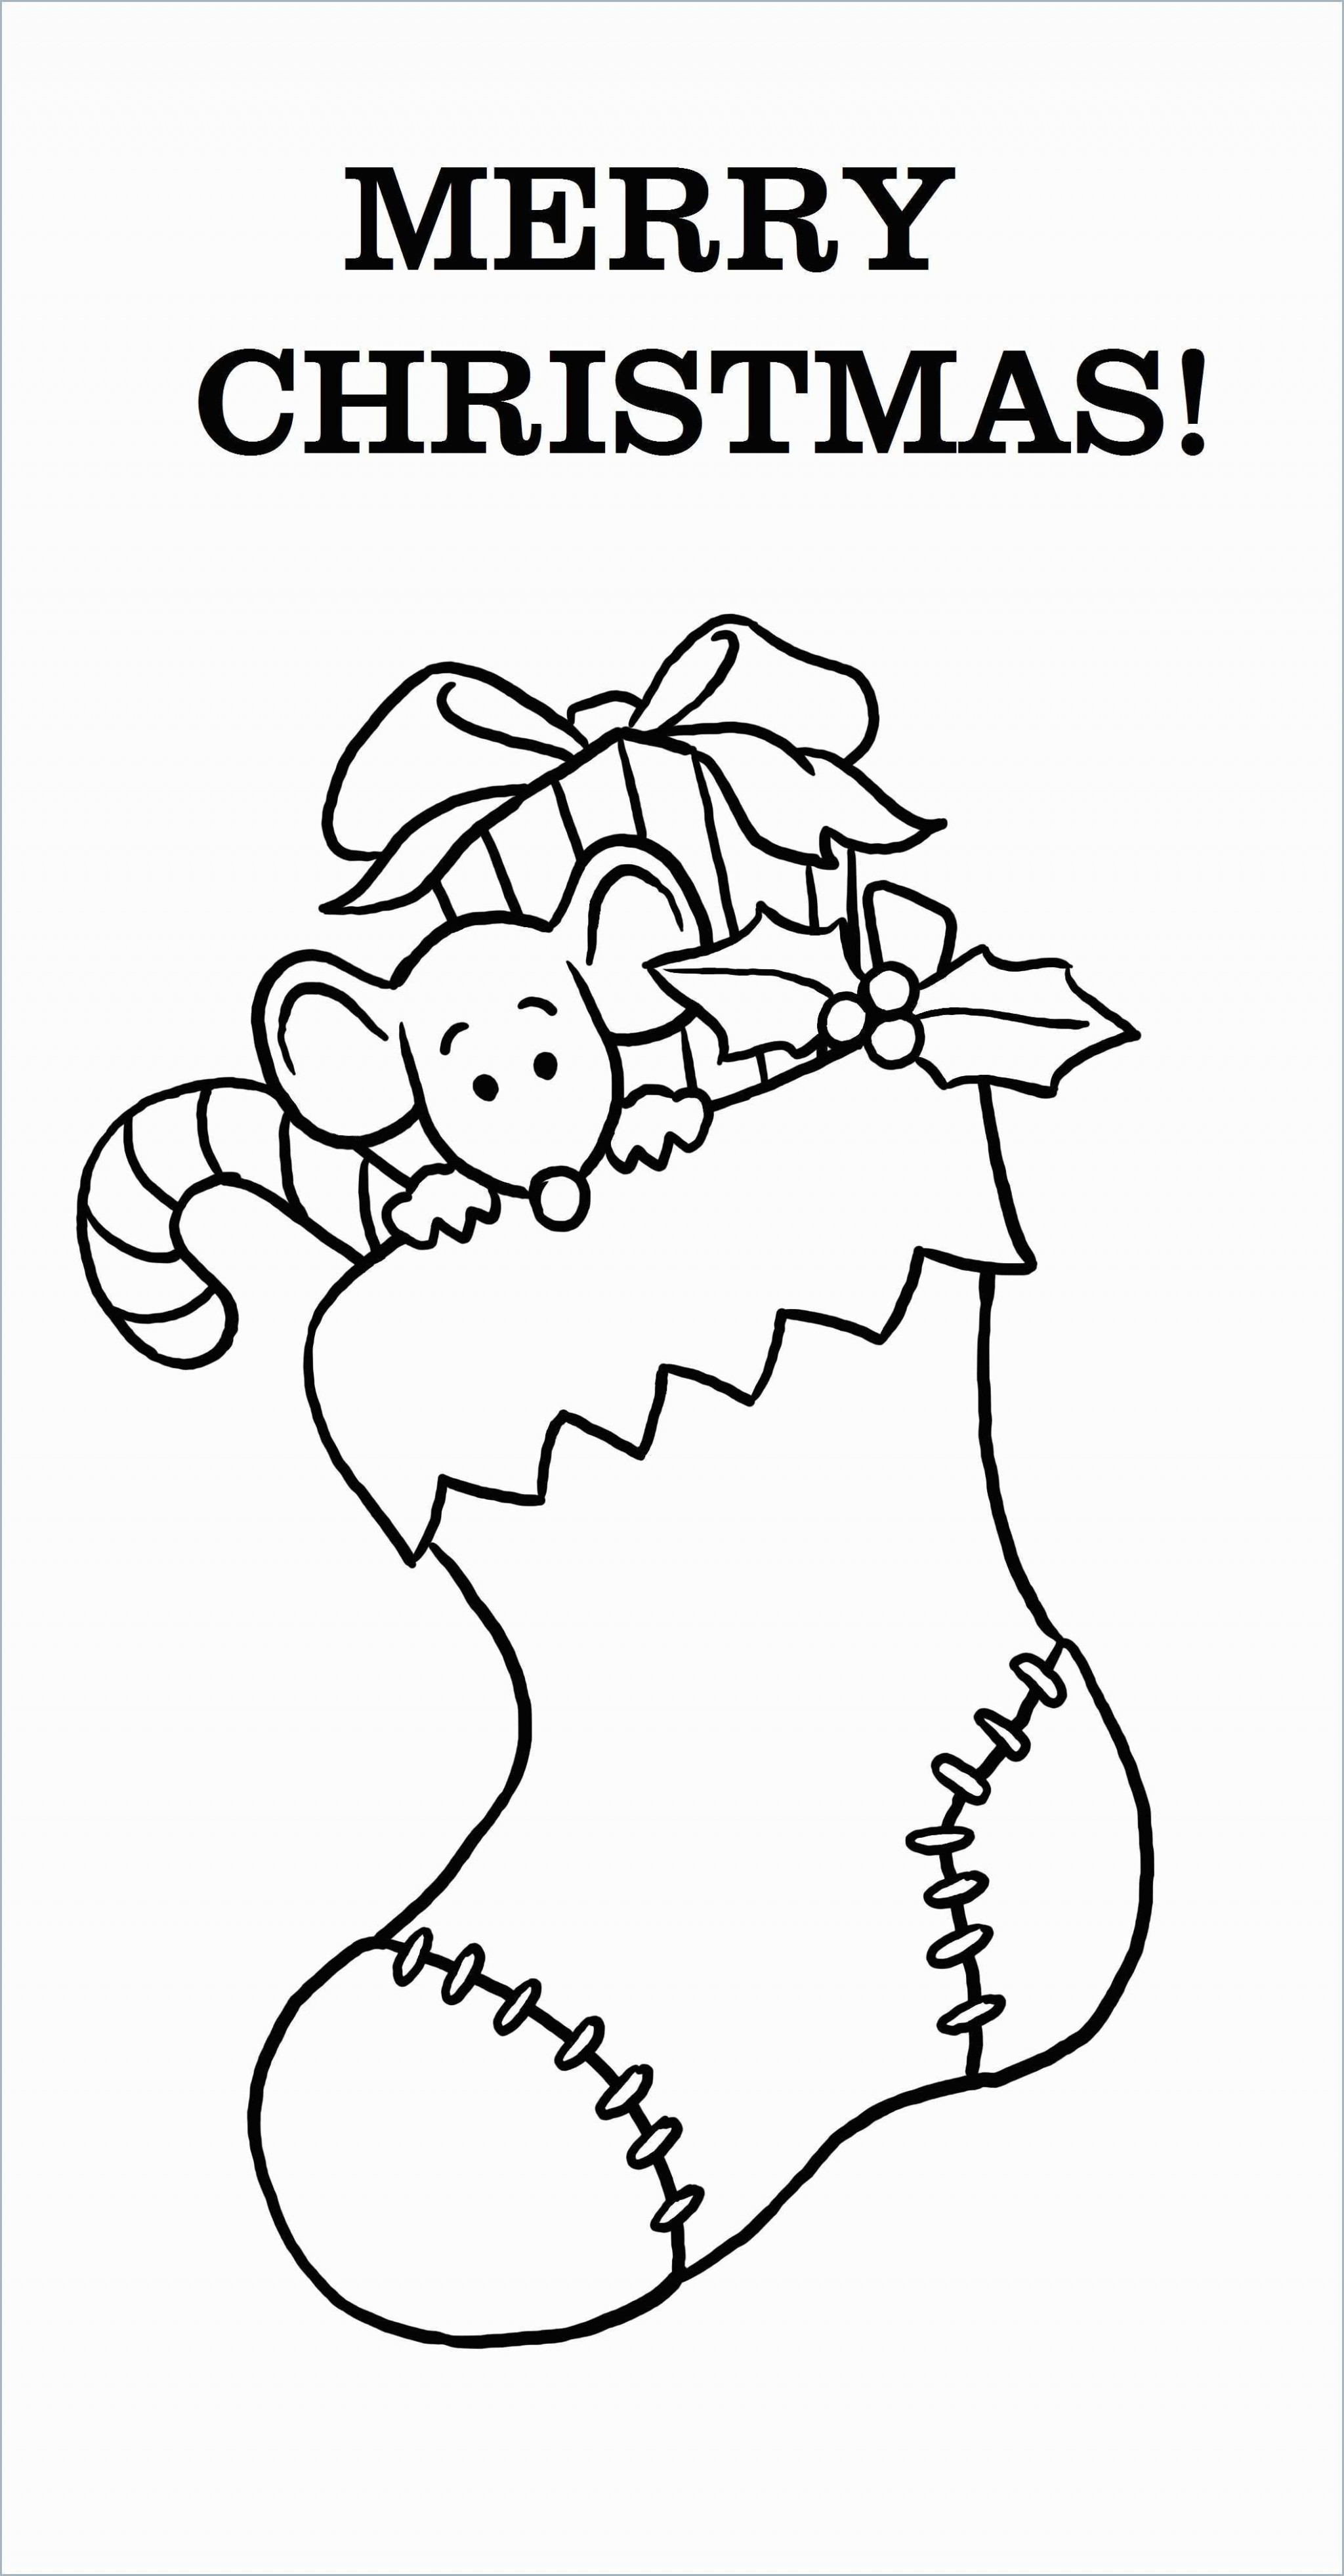 Coloring Ideas : Christmas Card Coloring Pages Merry Page Fresh Free ..